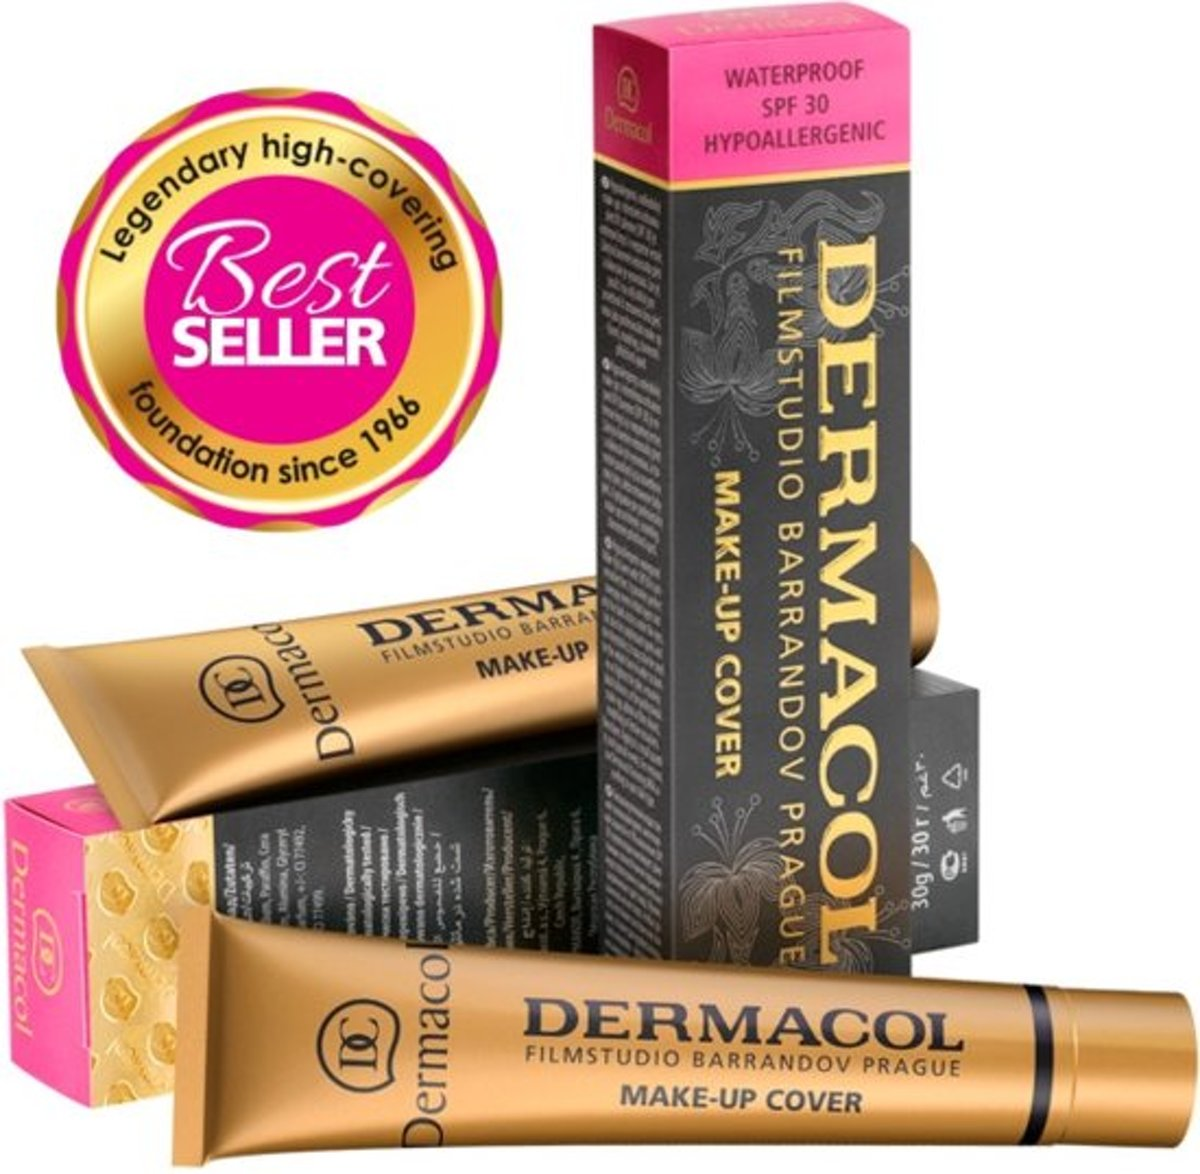 DERMACOL CAMOUFLAGE MAKE-UP COVER LEGENDARY HIGH COVERING MAKE-UP - 30 GRAM - VROUW - WATERPROOF - TINT 212